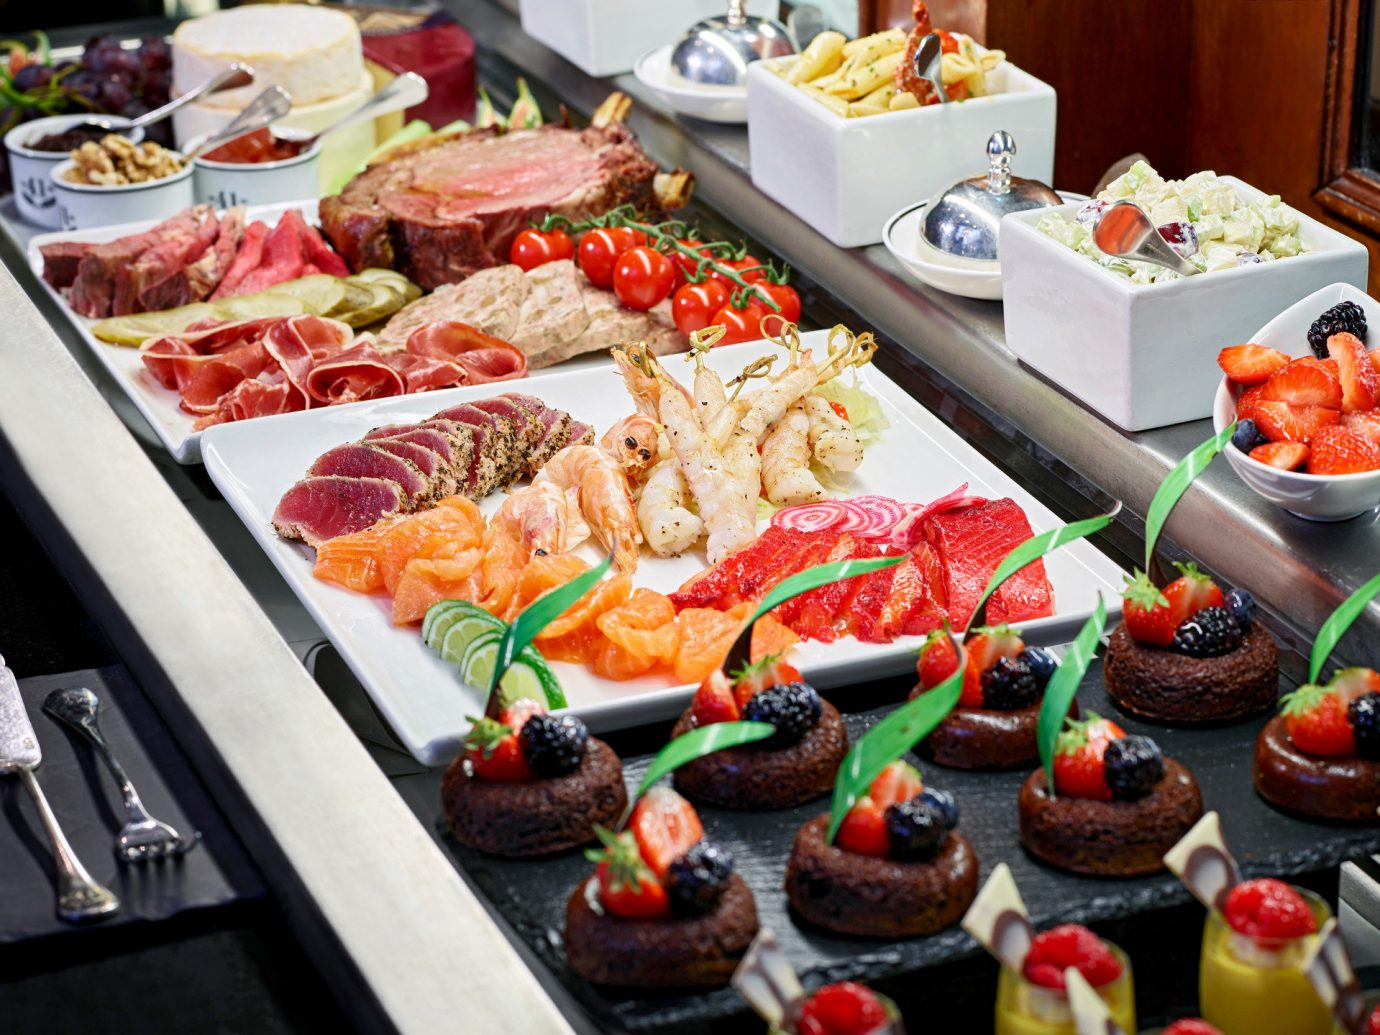 Boutique Hotels Hotels food meal dish buffet cuisine brunch hors d oeuvre sense breakfast several